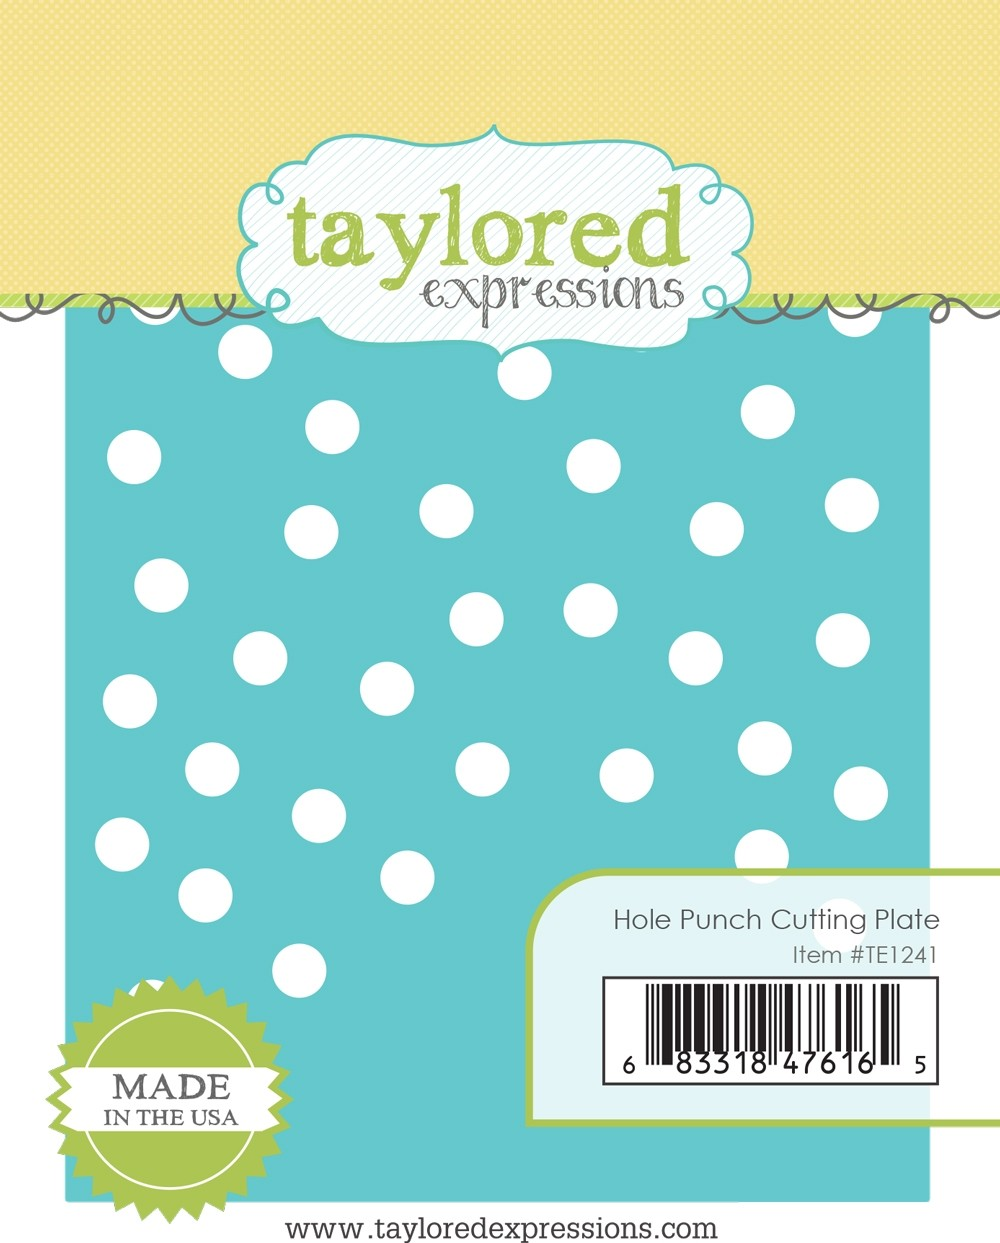 Taylored Expression - Hole Punch Cutting Plate